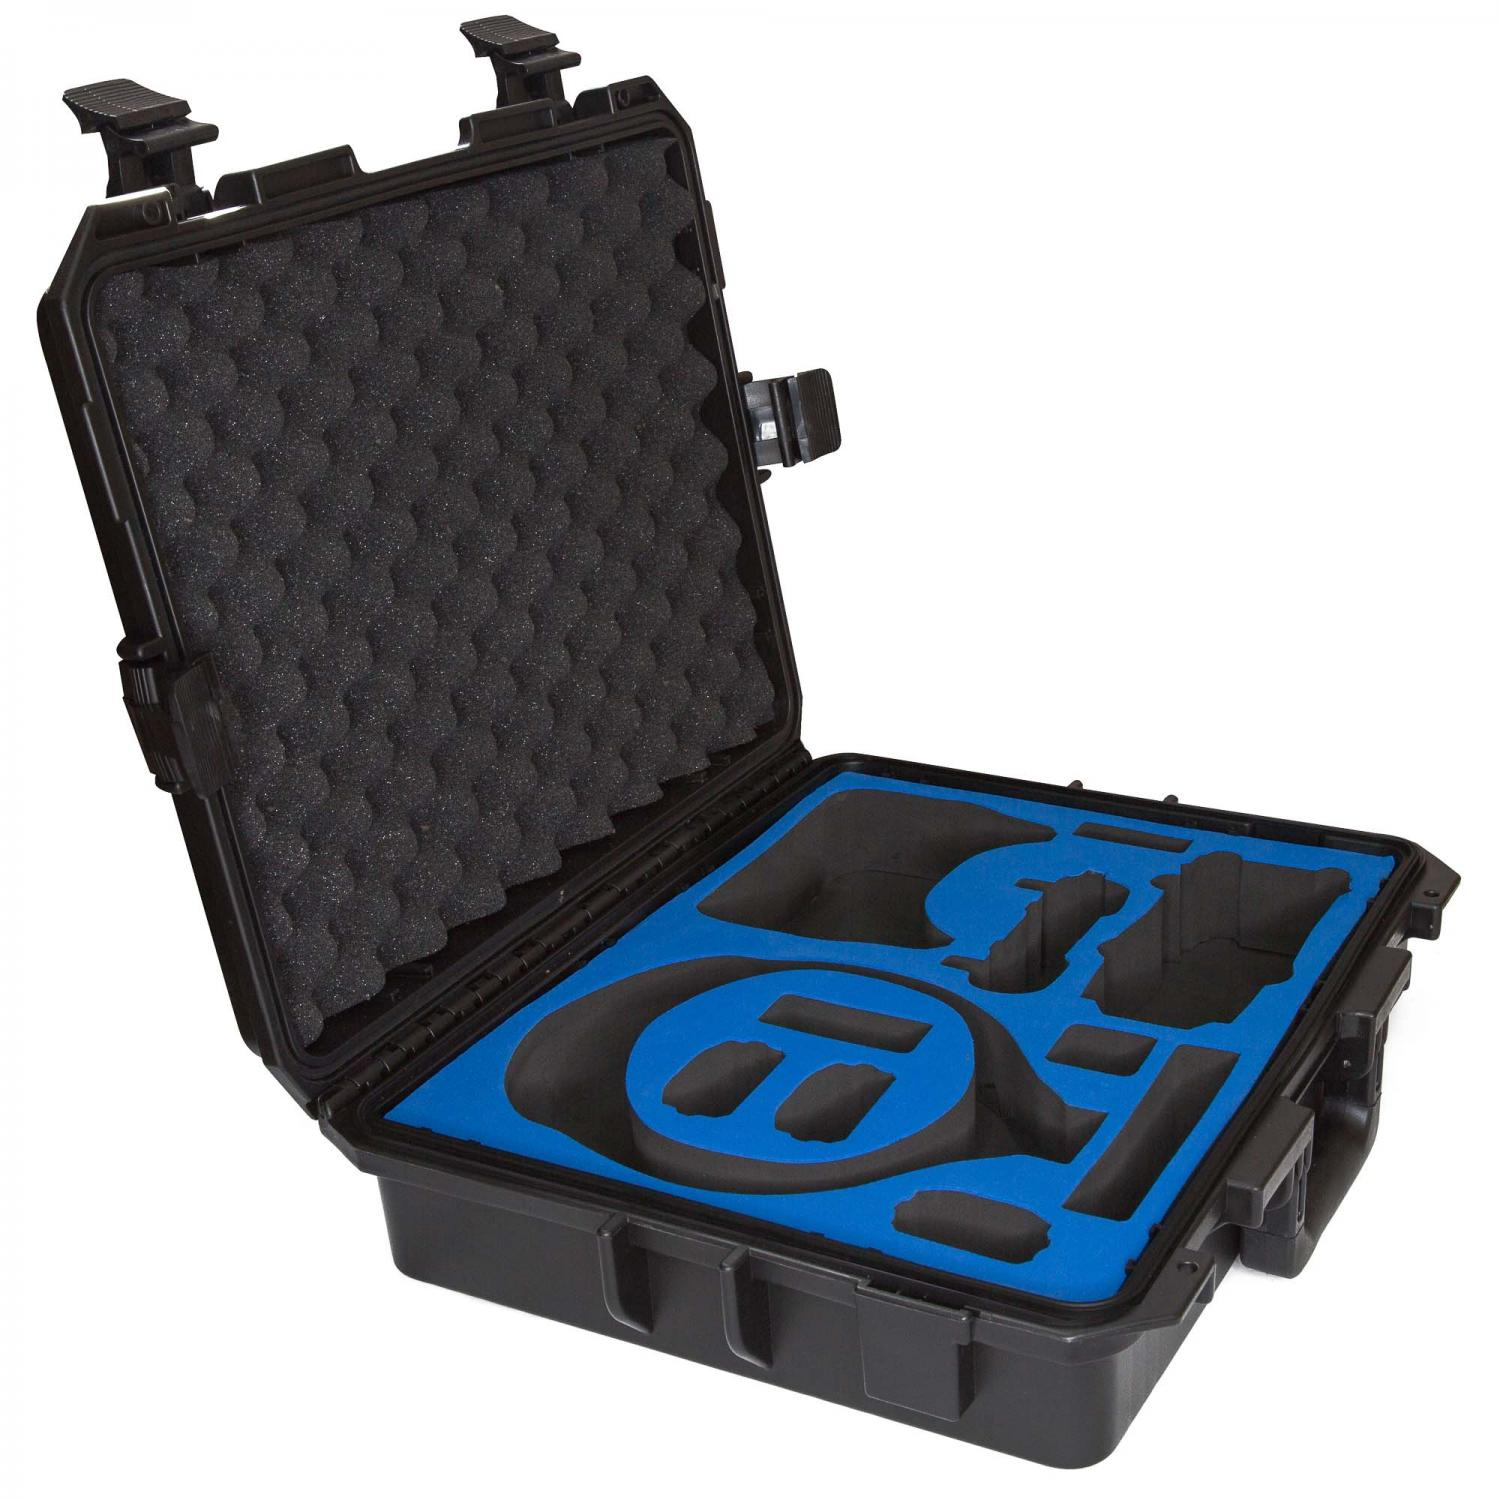 Ultimaxx Water Proof Case for